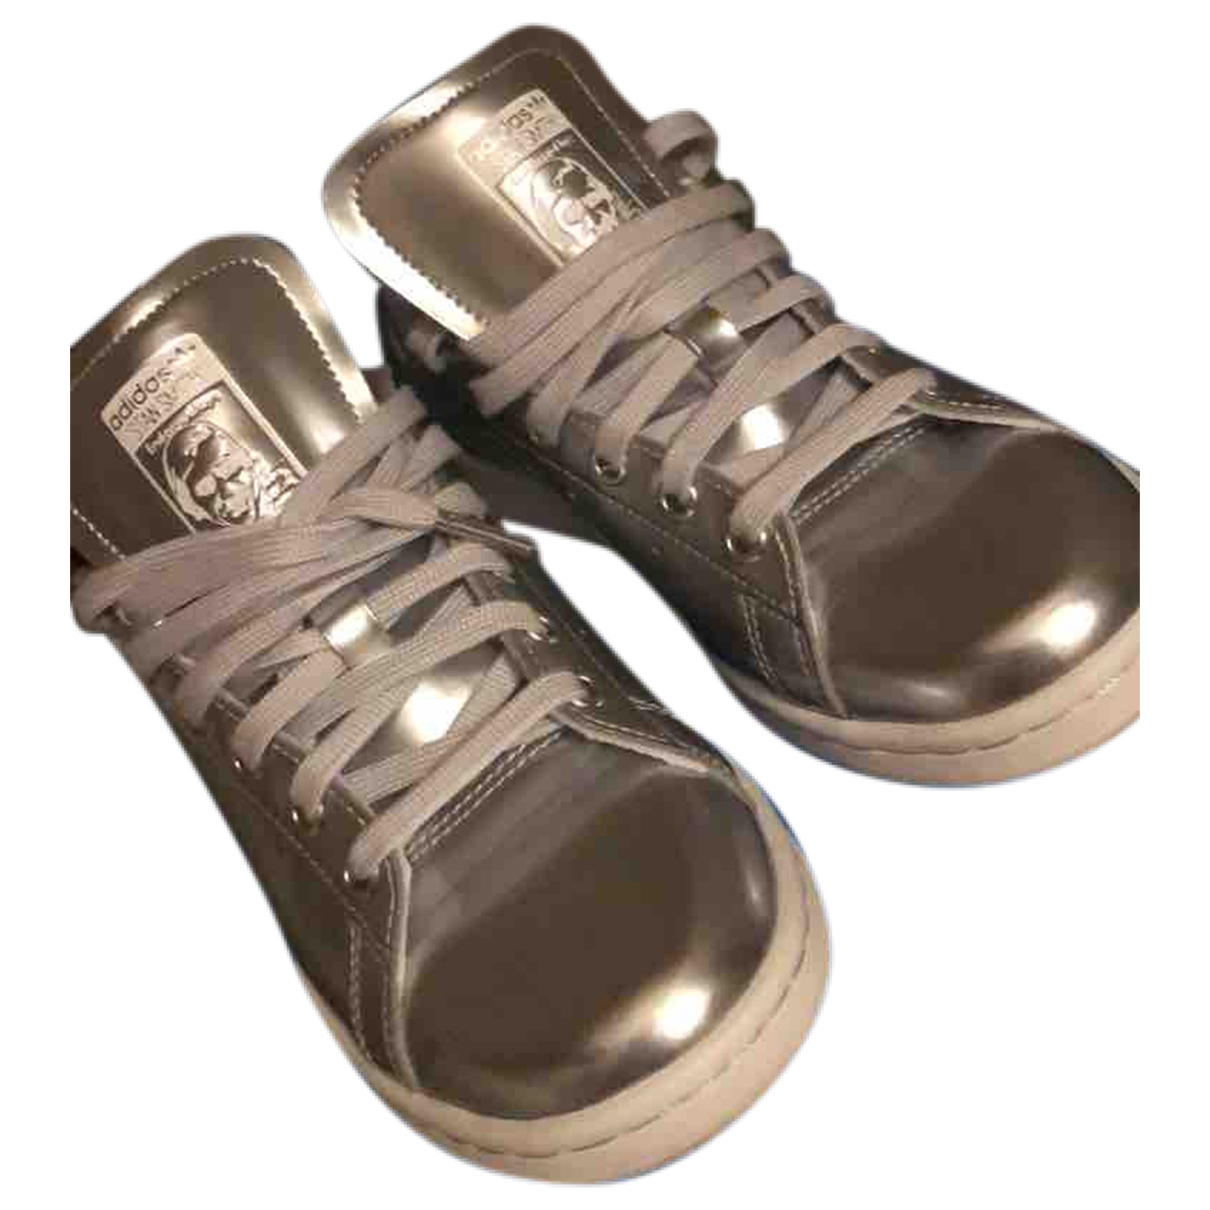 Adidas Stan Smith Silver Leather Trainers for Women 37.5 EU